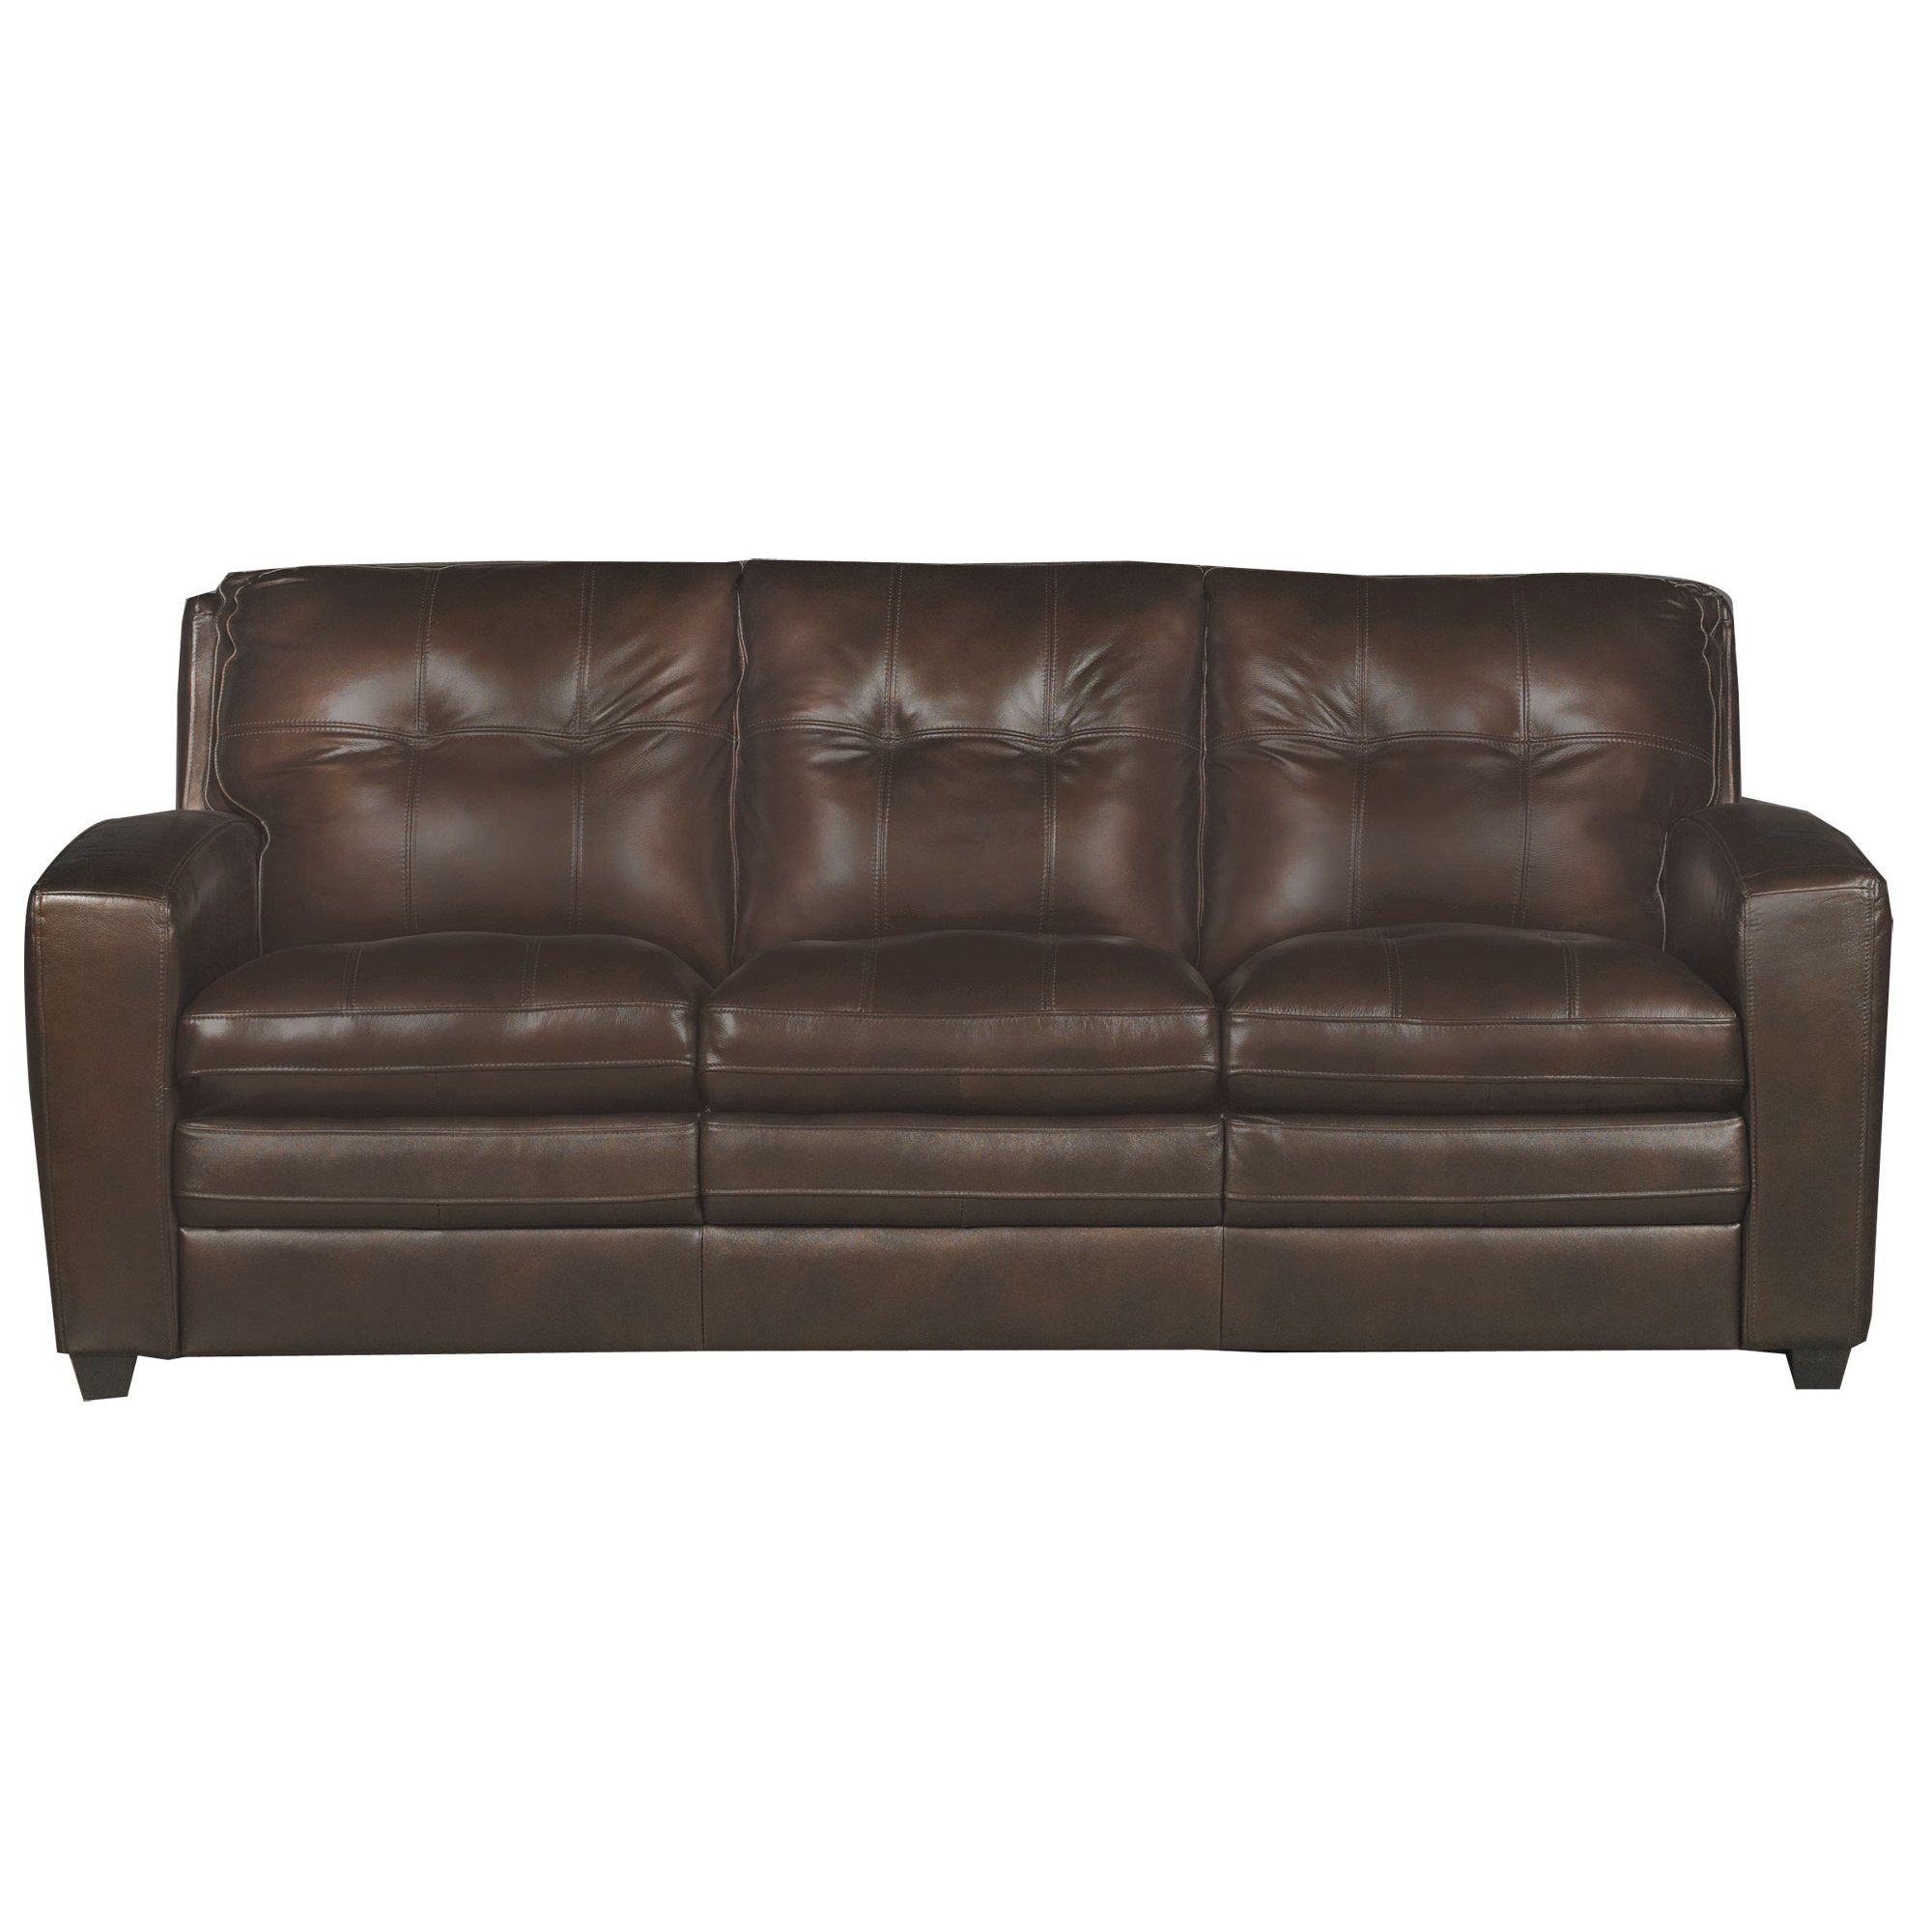 Best ideas about Leather Sofa Sleeper . Save or Pin Sofa Bed Leather Brown Beautiful Leather Sofa Sleepers Now.